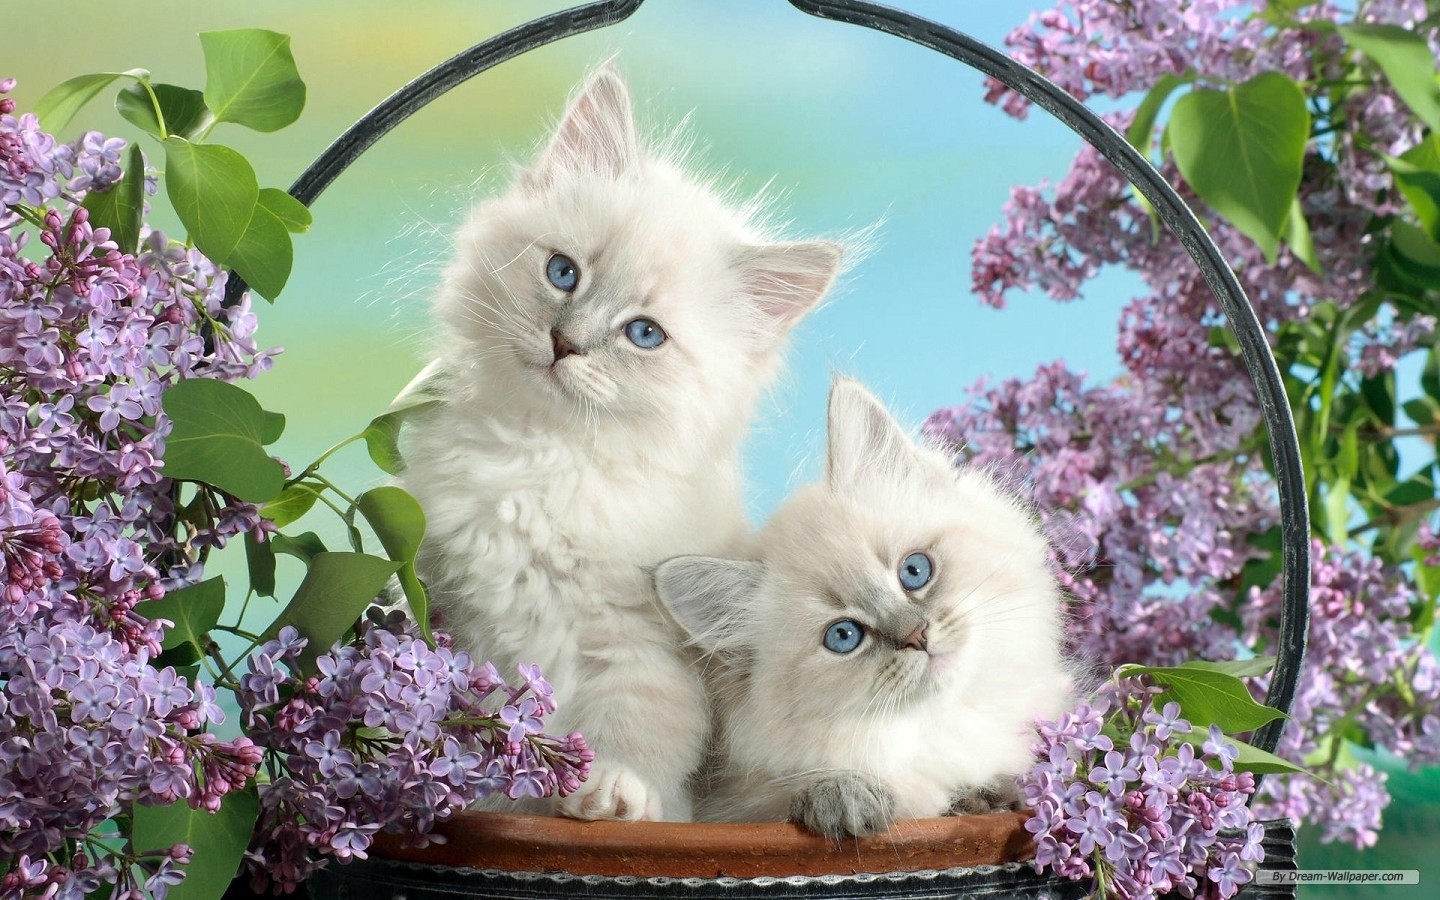 free wallpaper - free animal wallpaper - cute animals 1 wallpaper